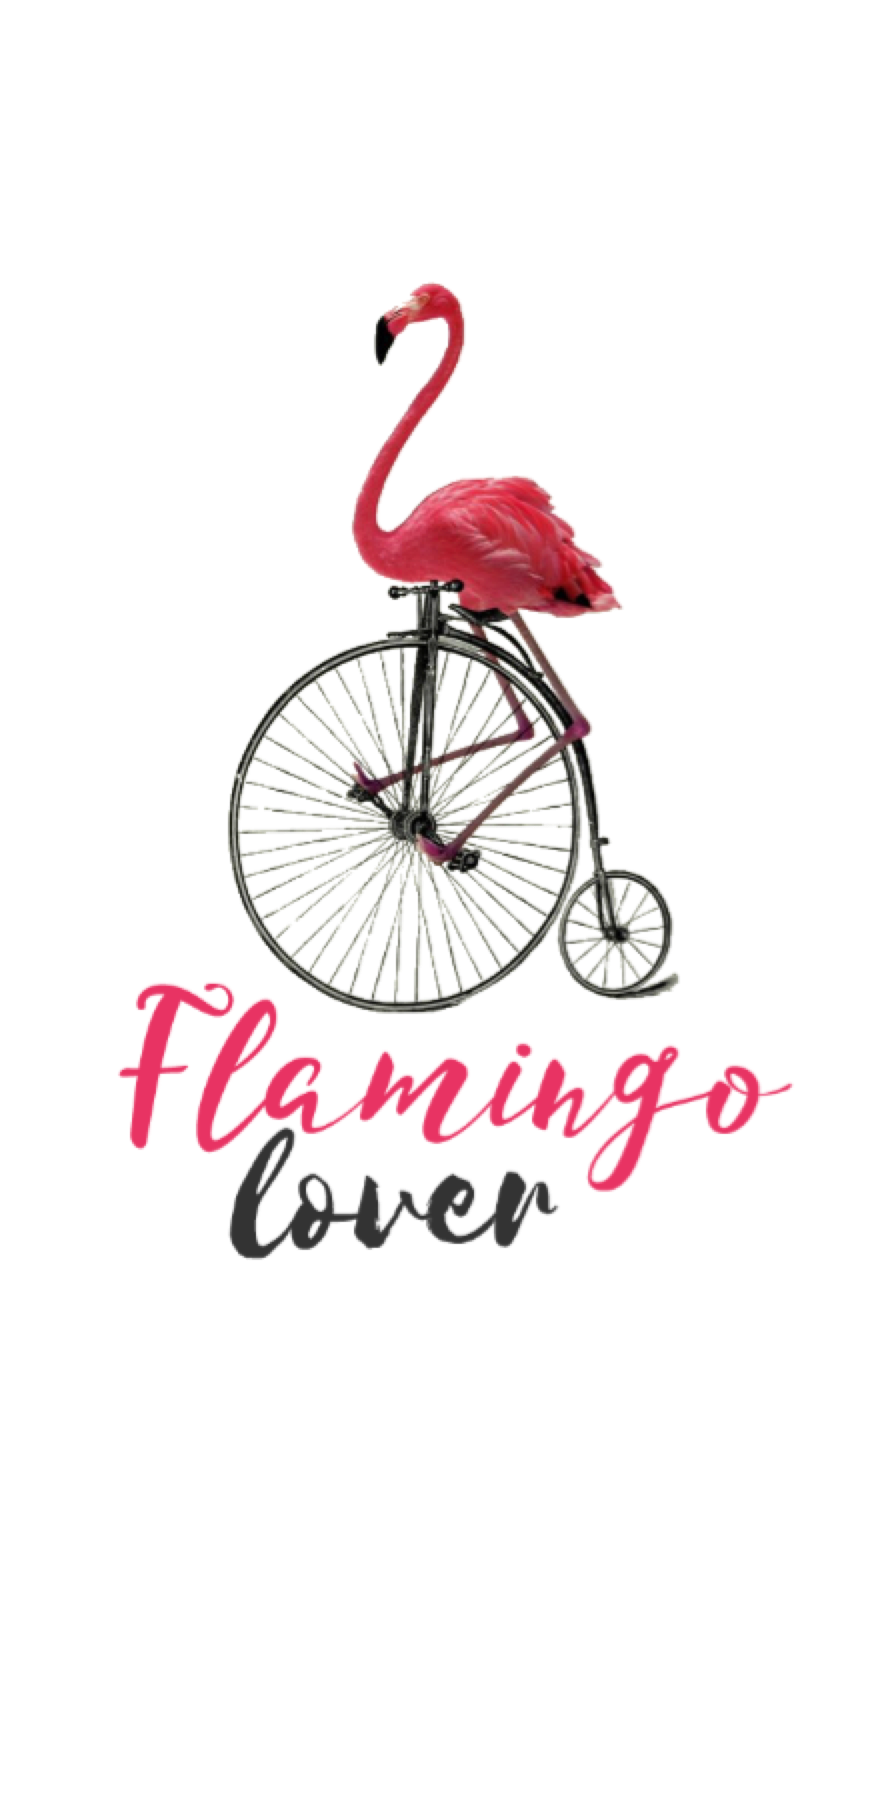 cover flamingo collection